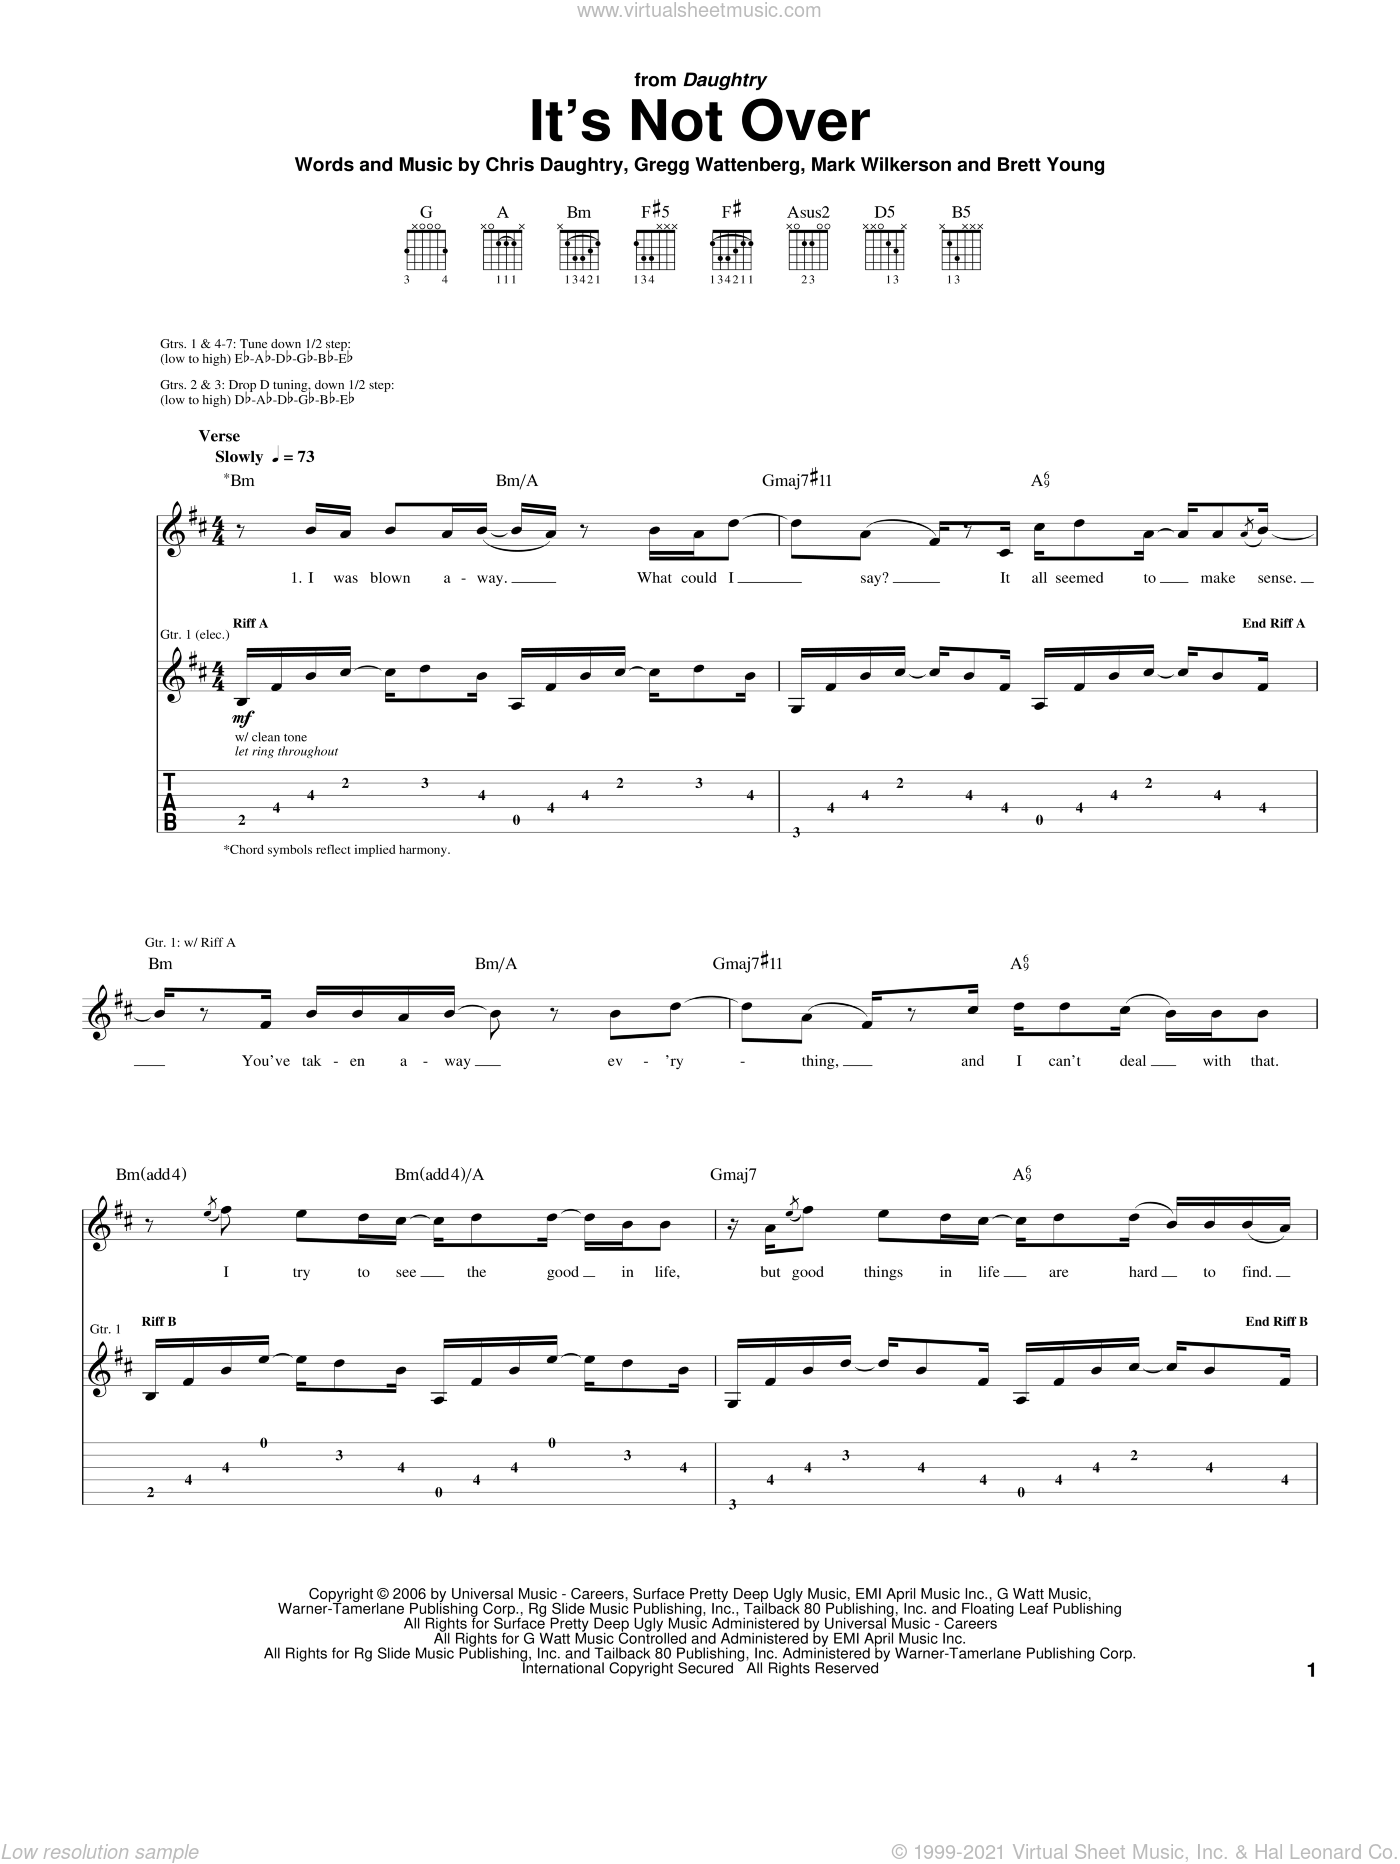 It's Not Over sheet music for guitar (tablature) by Mark Wilkerson